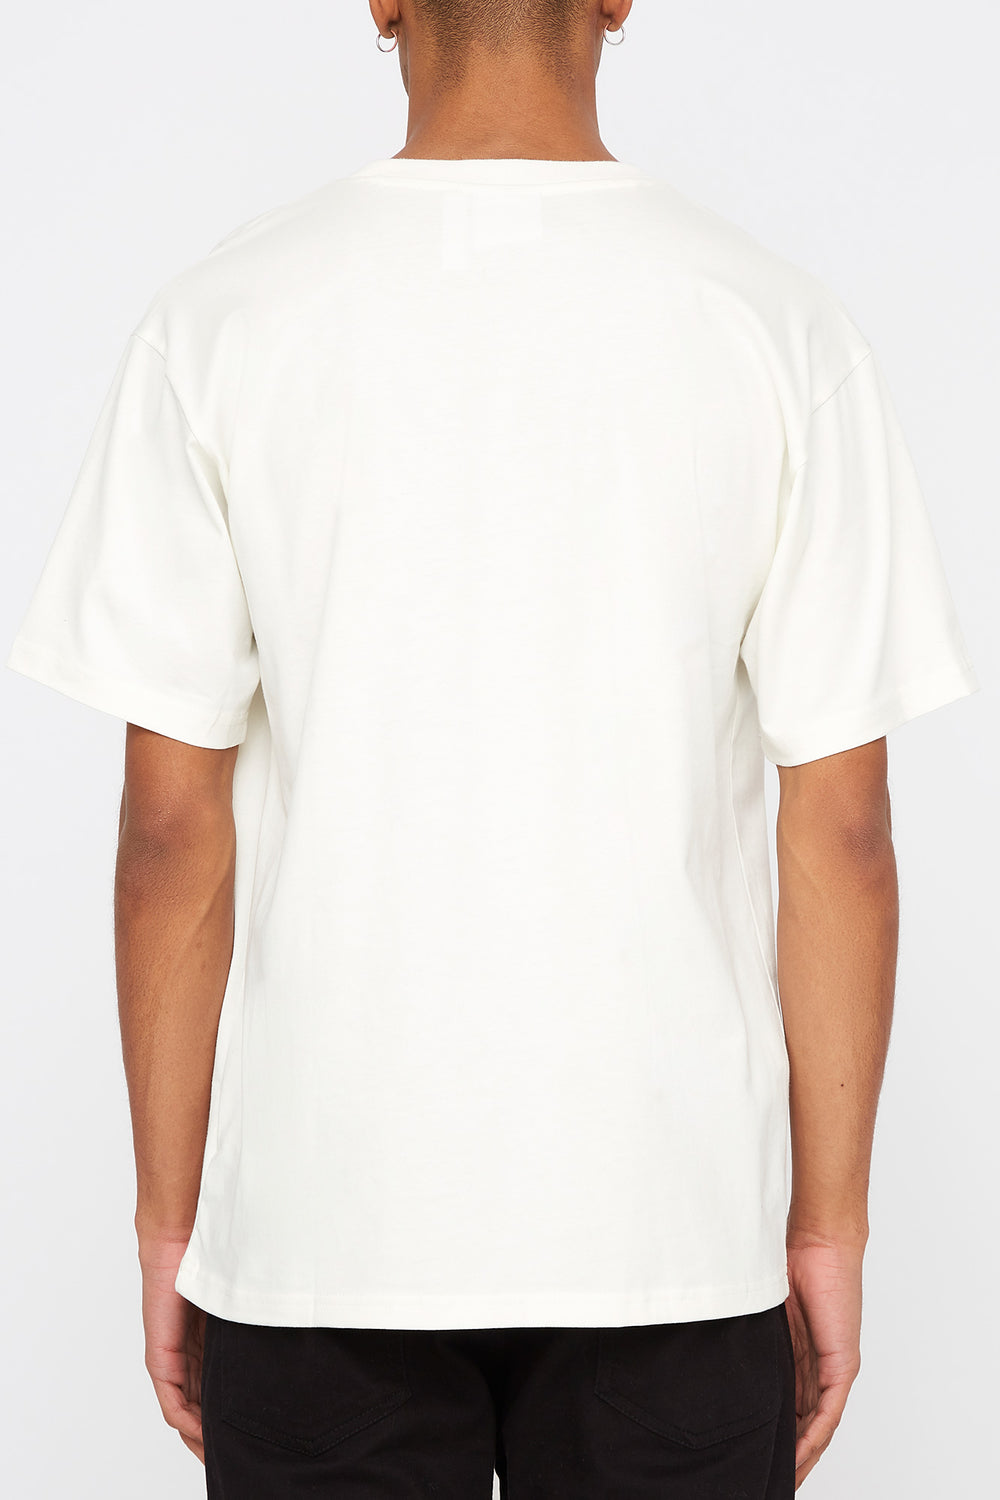 T-Shirt Rules Are For Sports Adidas Homme Blanc